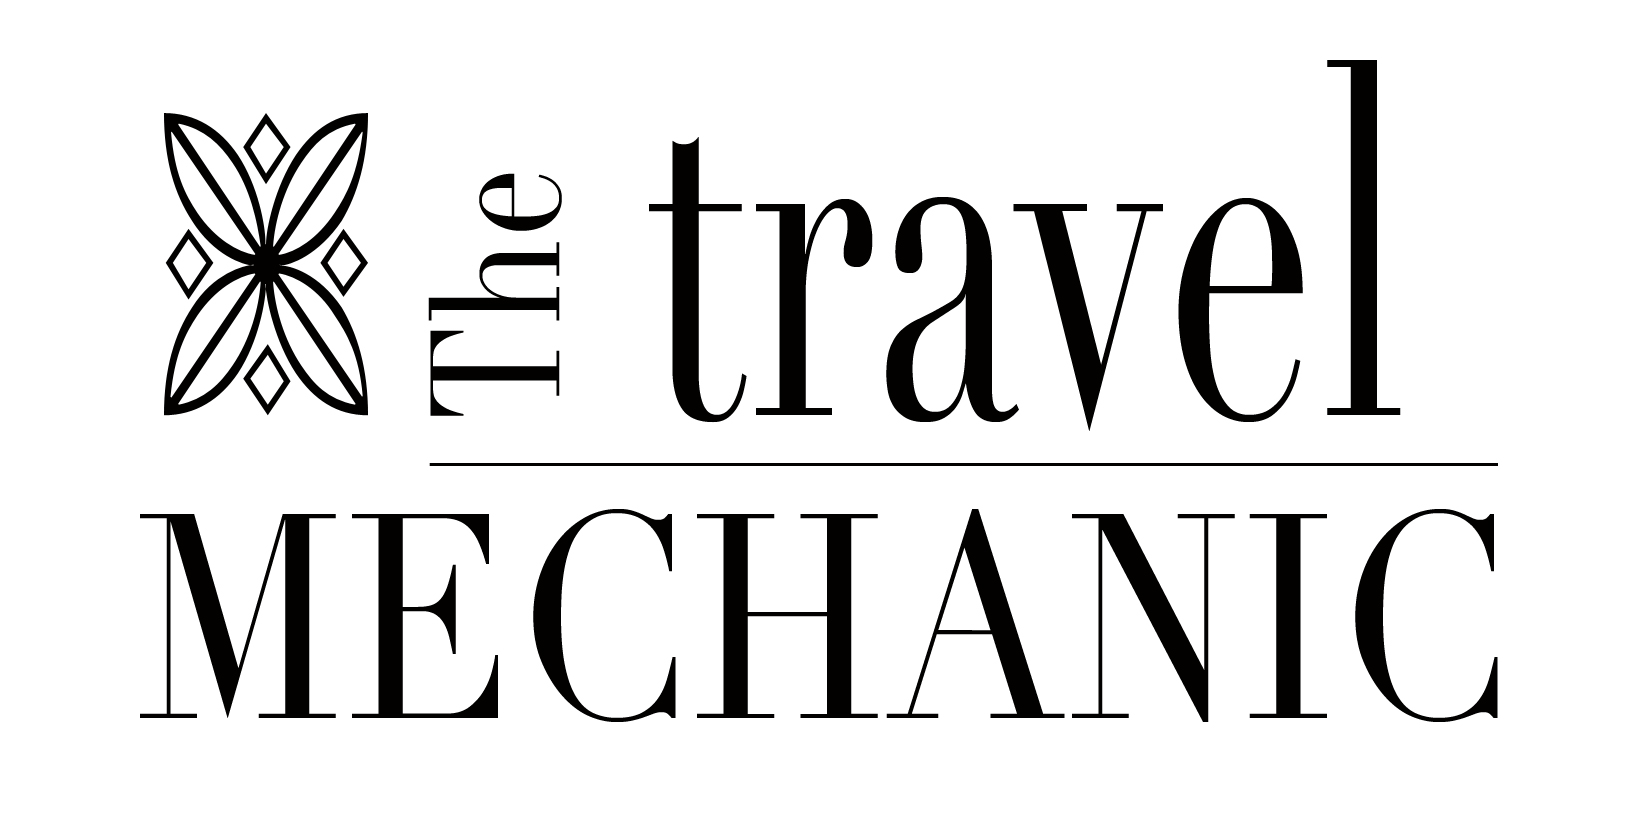 The Travel Mechanic